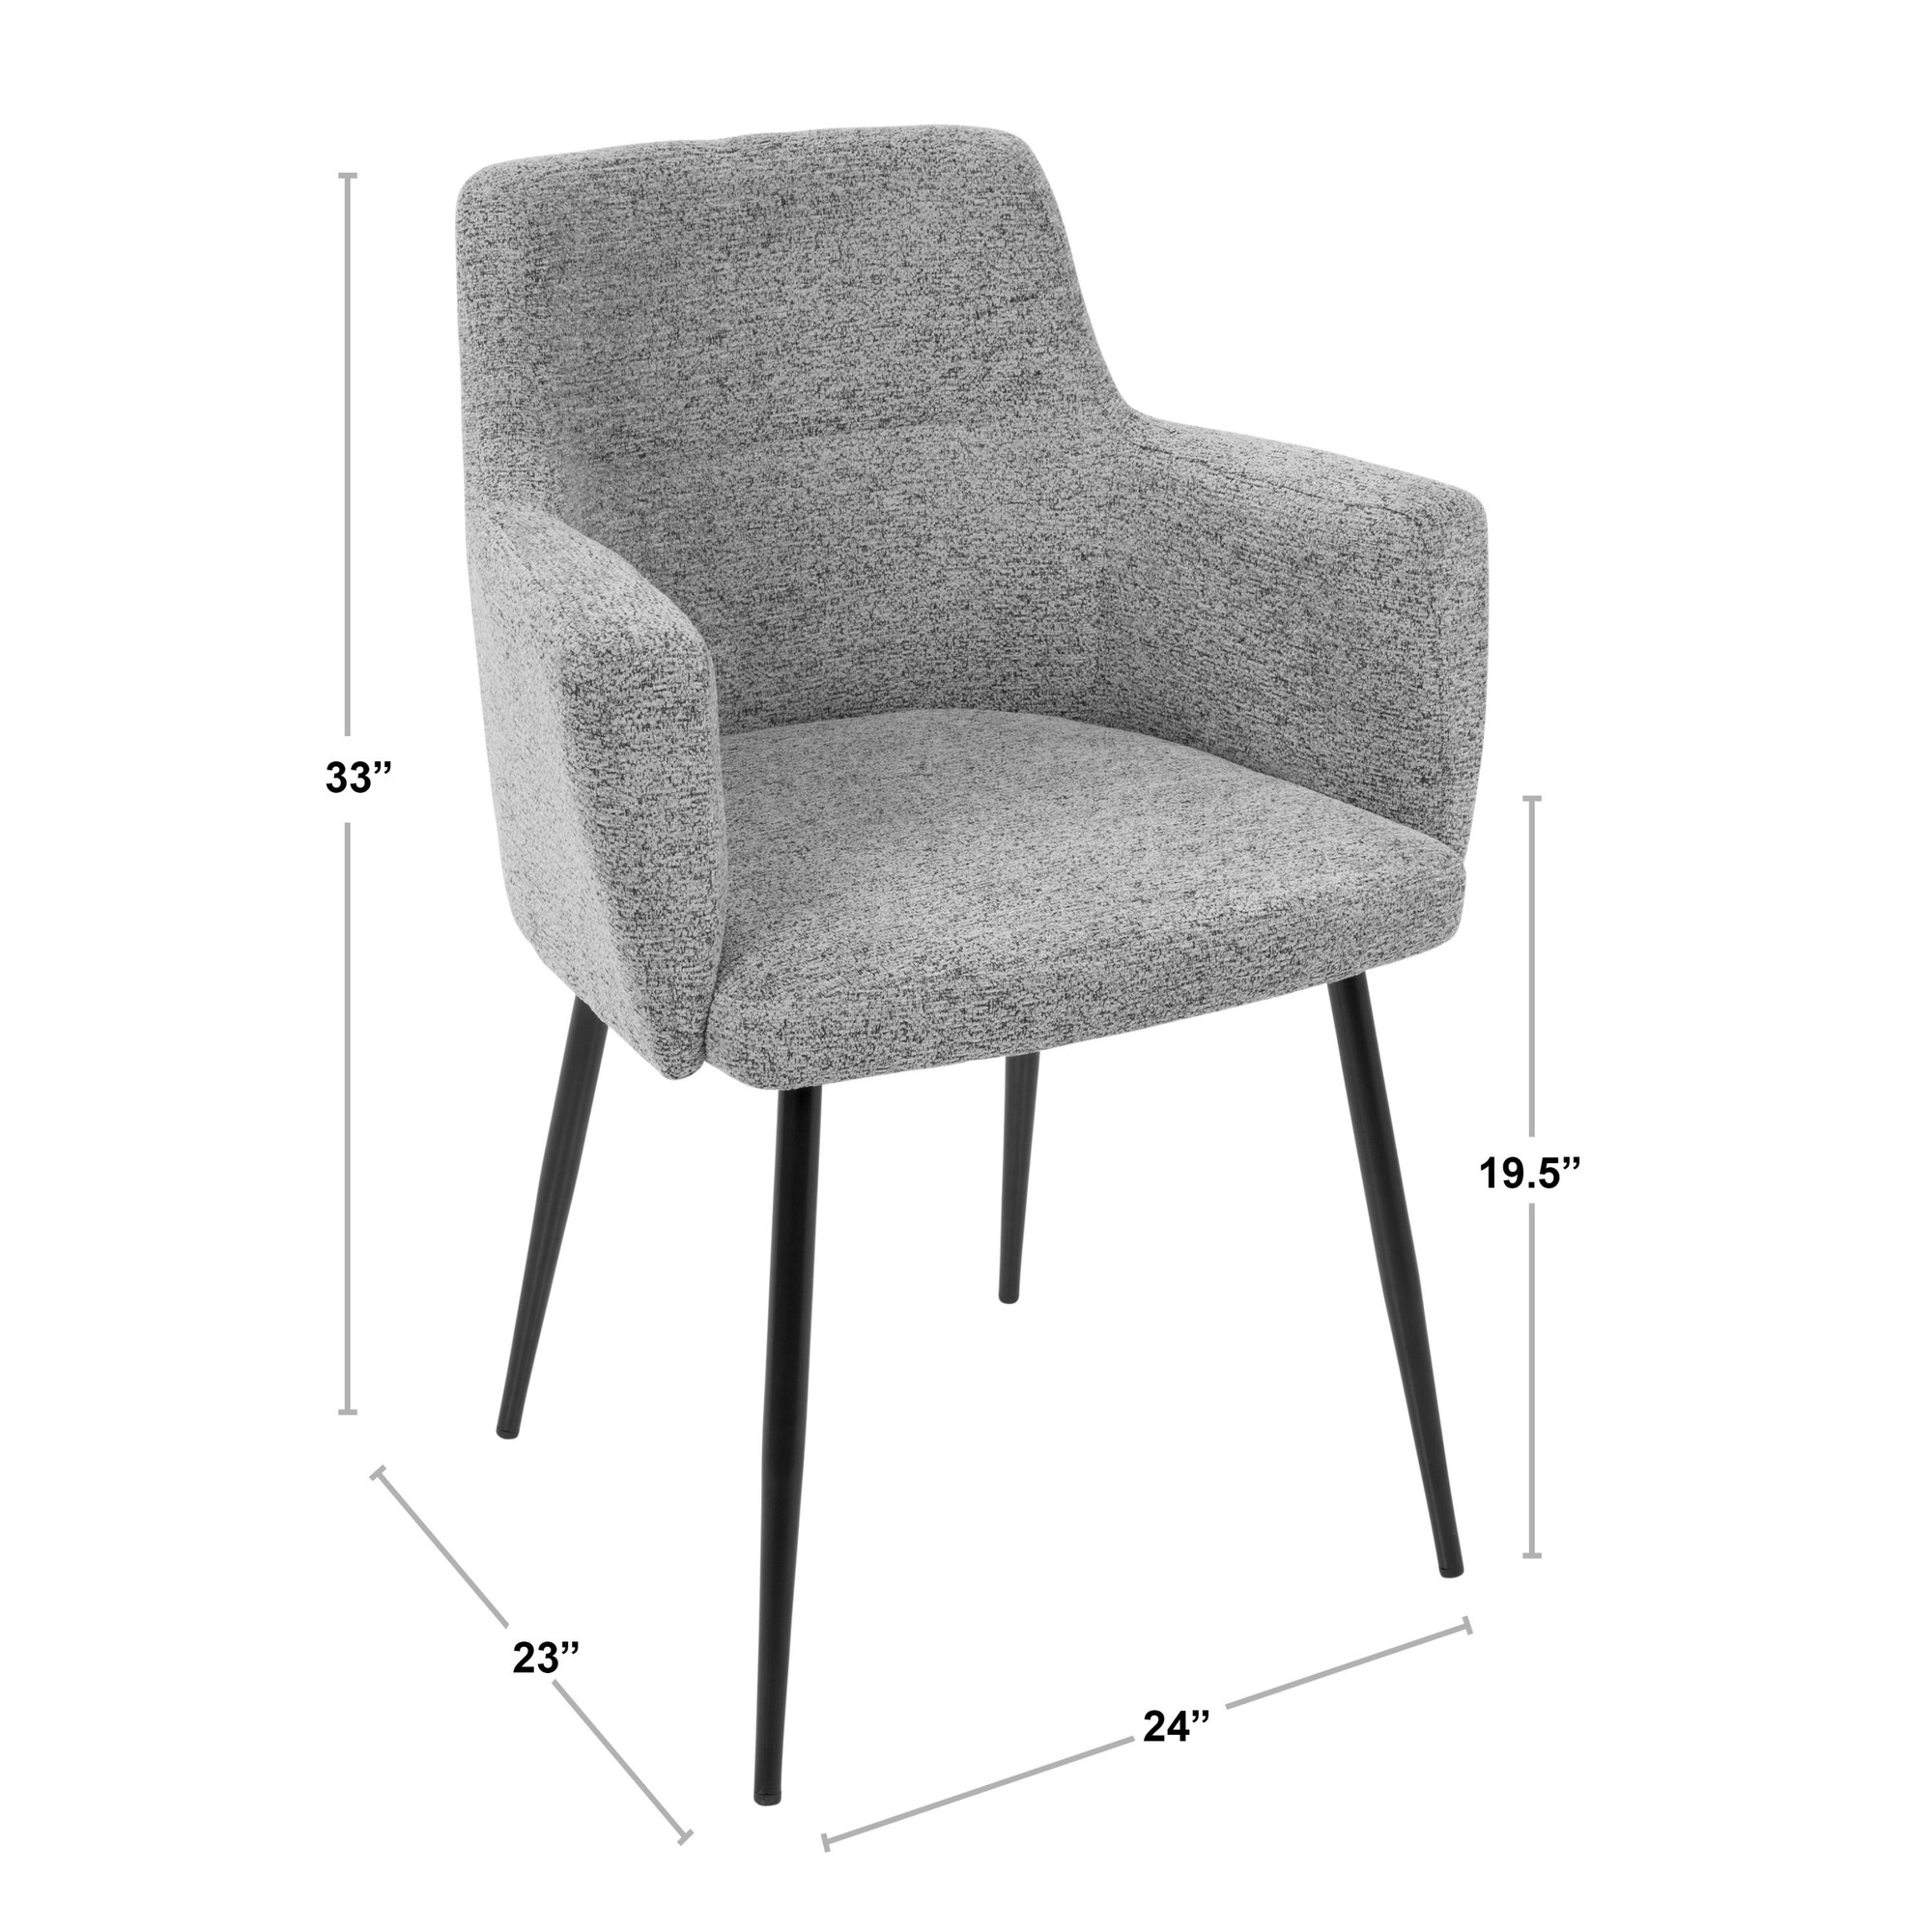 Andrew Chair Set Of 2 Lumisource Stylish Decor At Affordable Prices